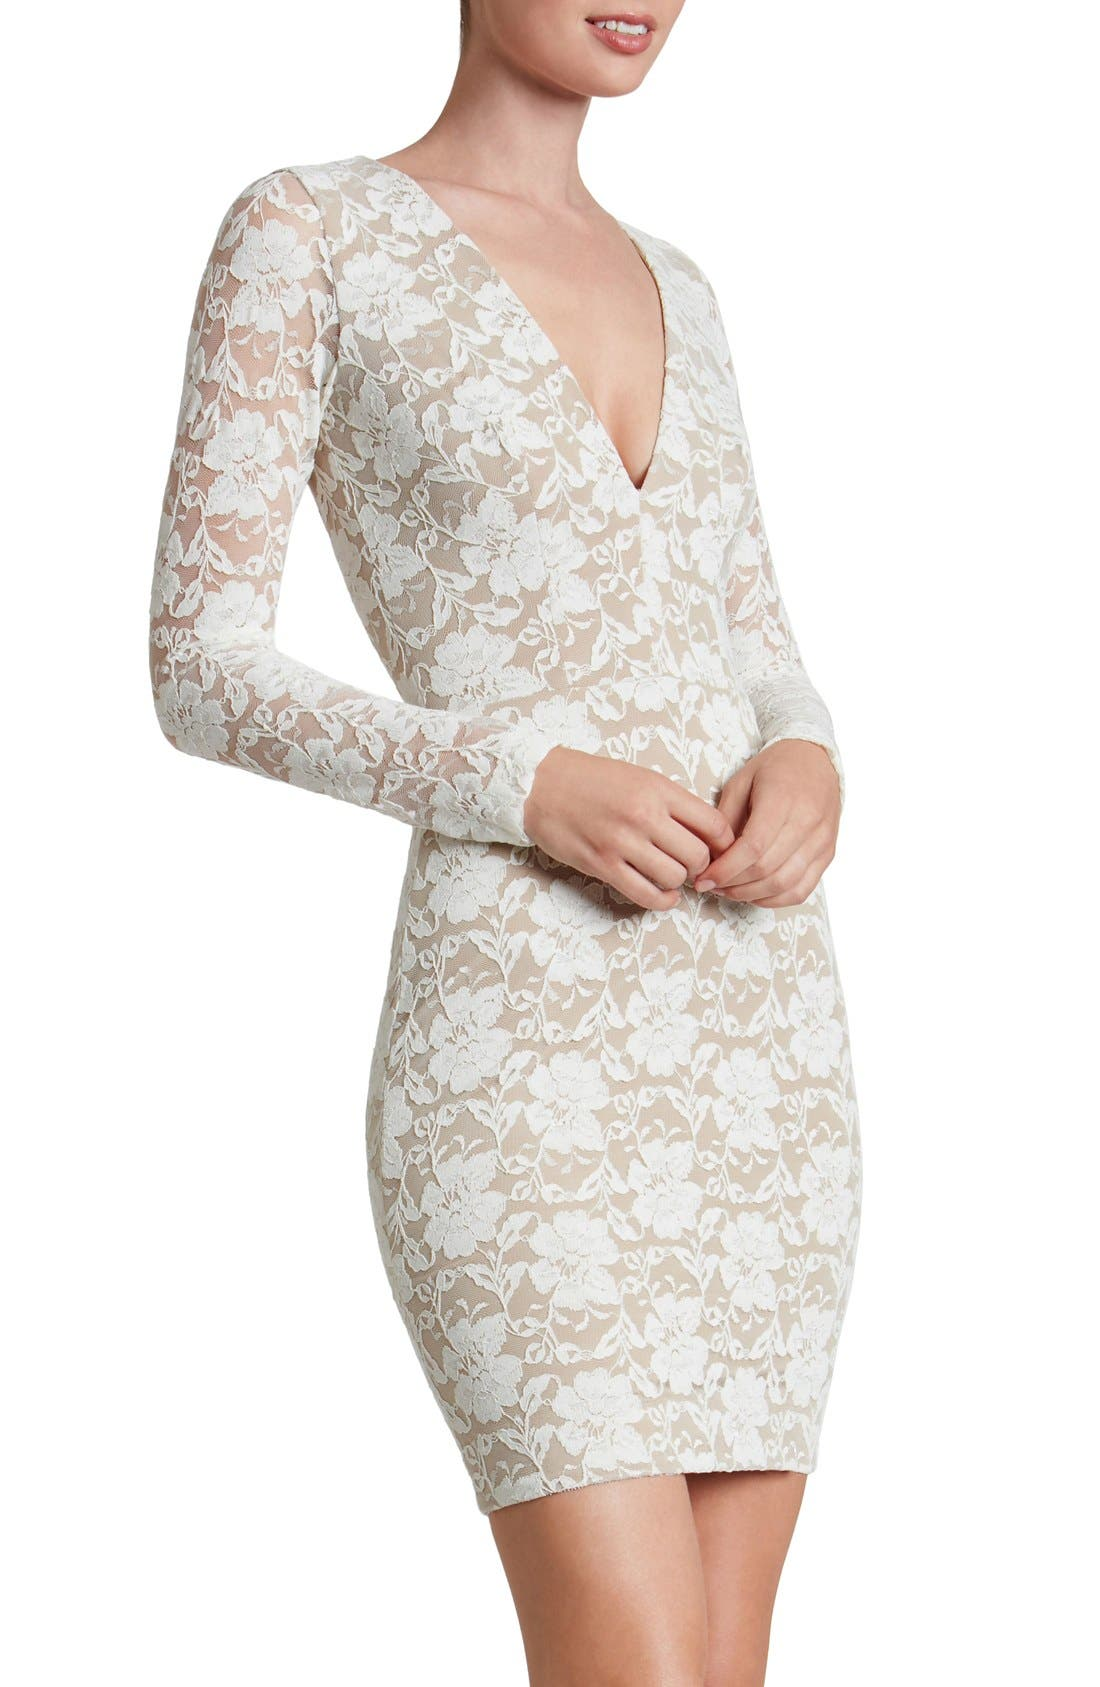 Alternate Image 1 Selected - Dress the Population 'Erica' Plunge Neck Lace Body-Con Dress